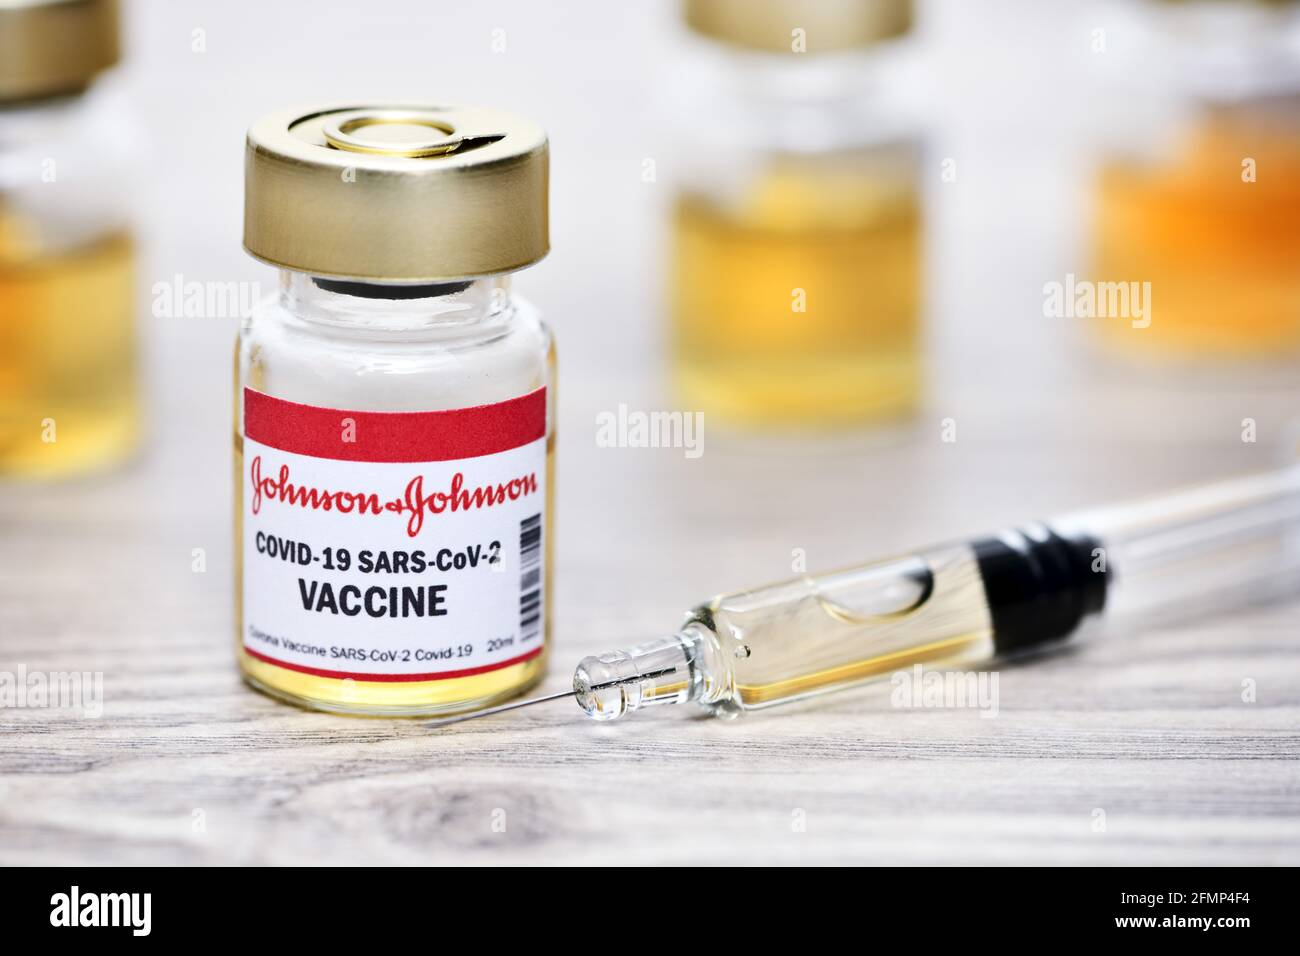 Covid Vaccine of Johnson and Johnson, image symbolique Banque D'Images